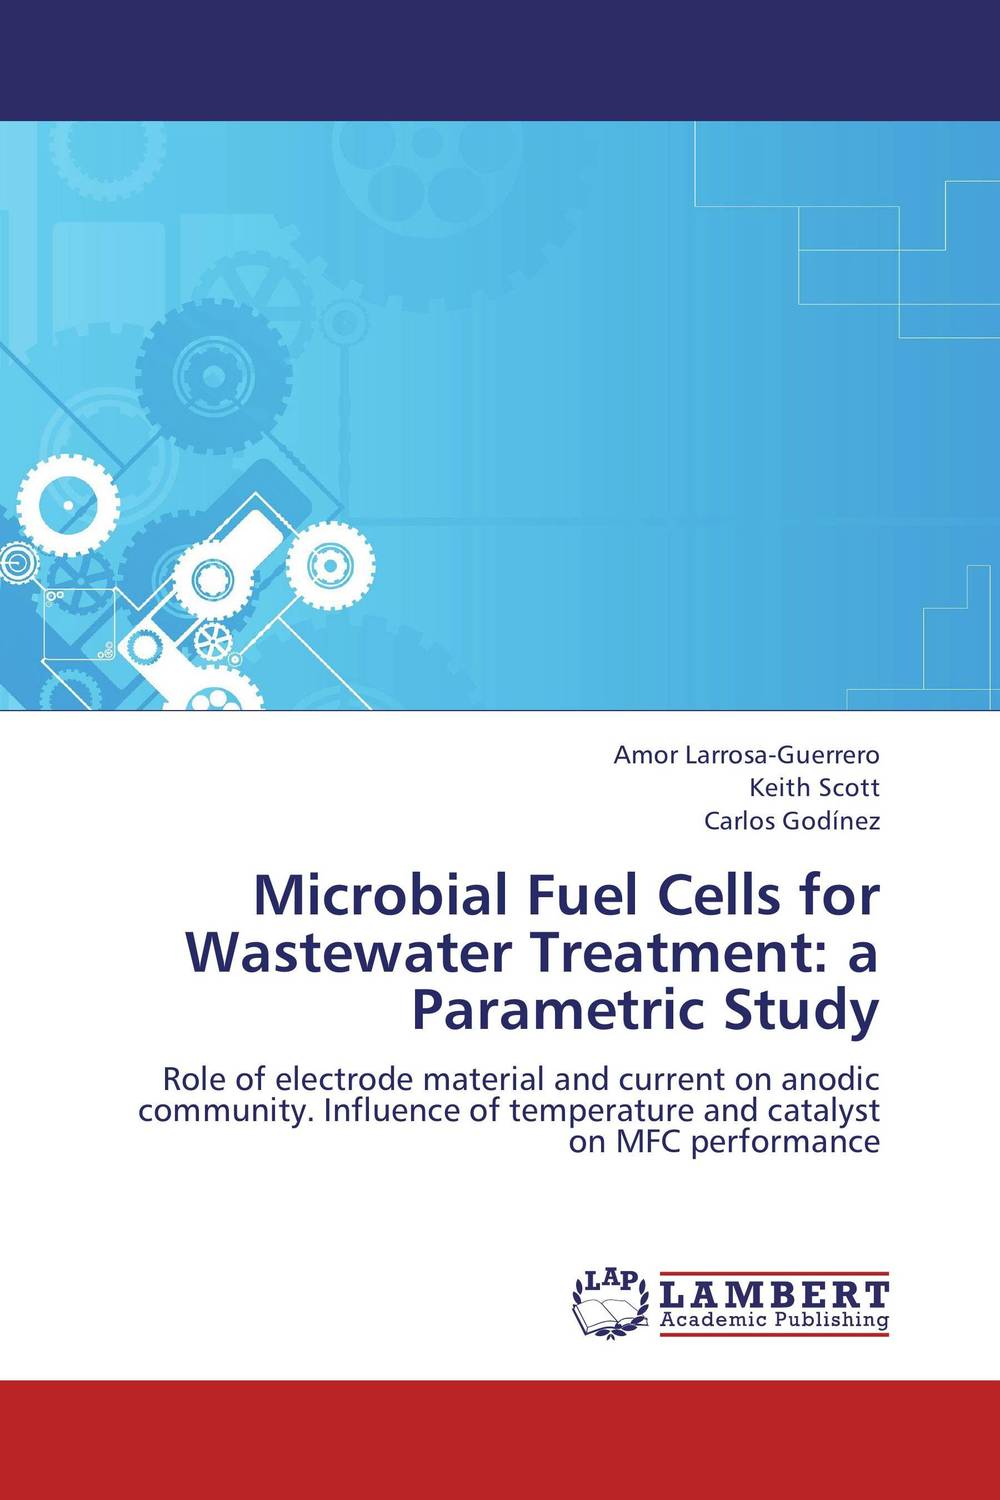 Microbial Fuel Cells for Wastewater Treatment: a Parametric Study